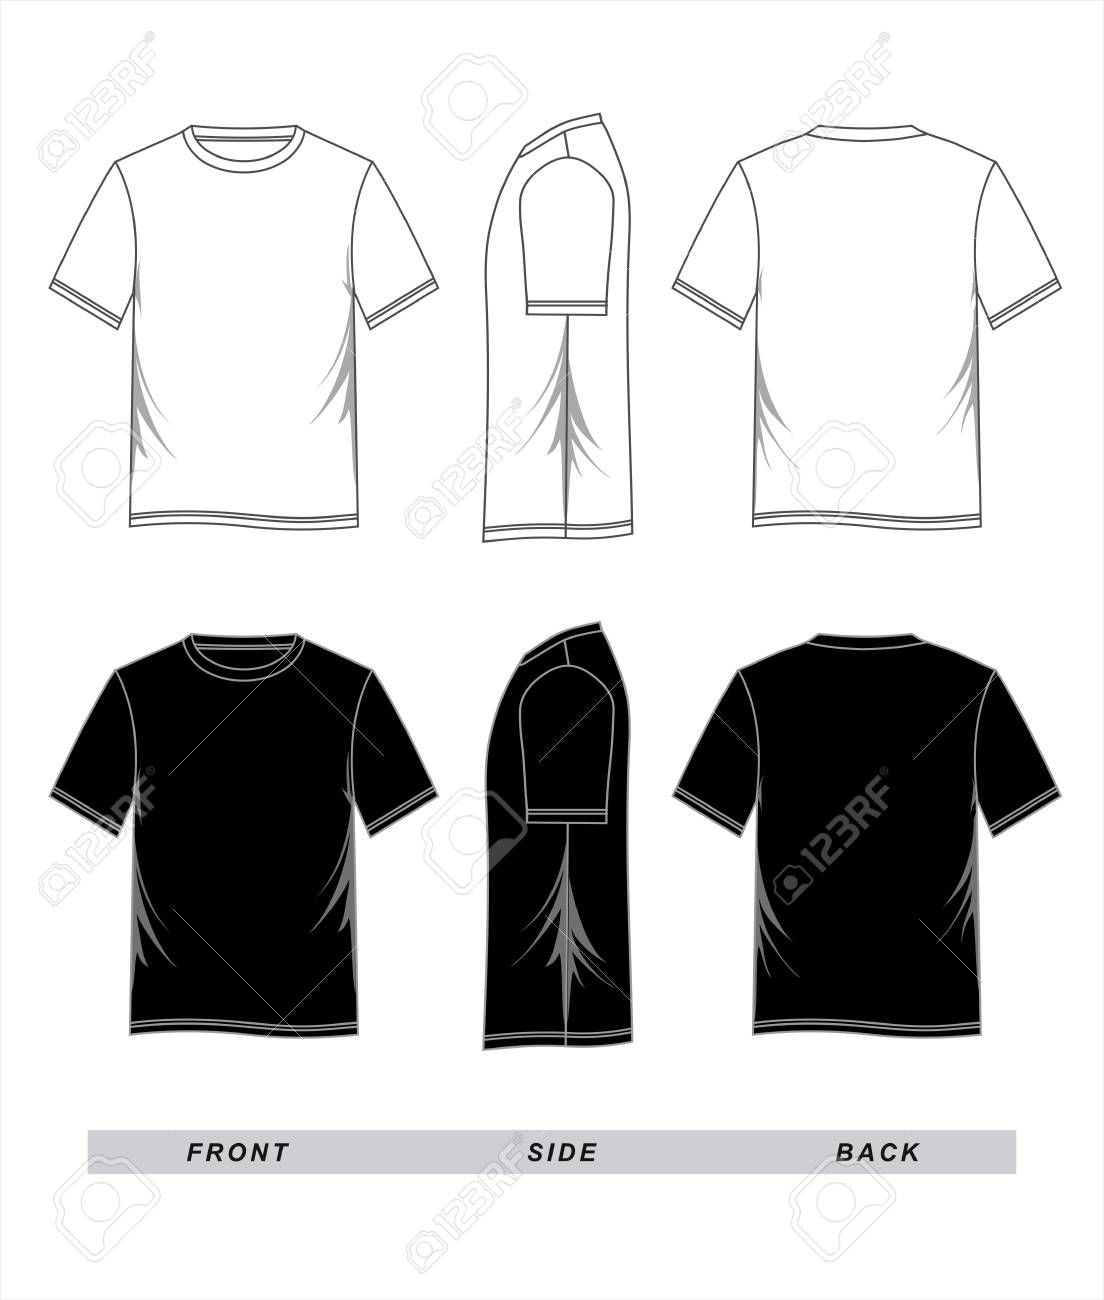 001 Striking T Shirt Template Vector Image  Illustrator Design Free Download AiFull